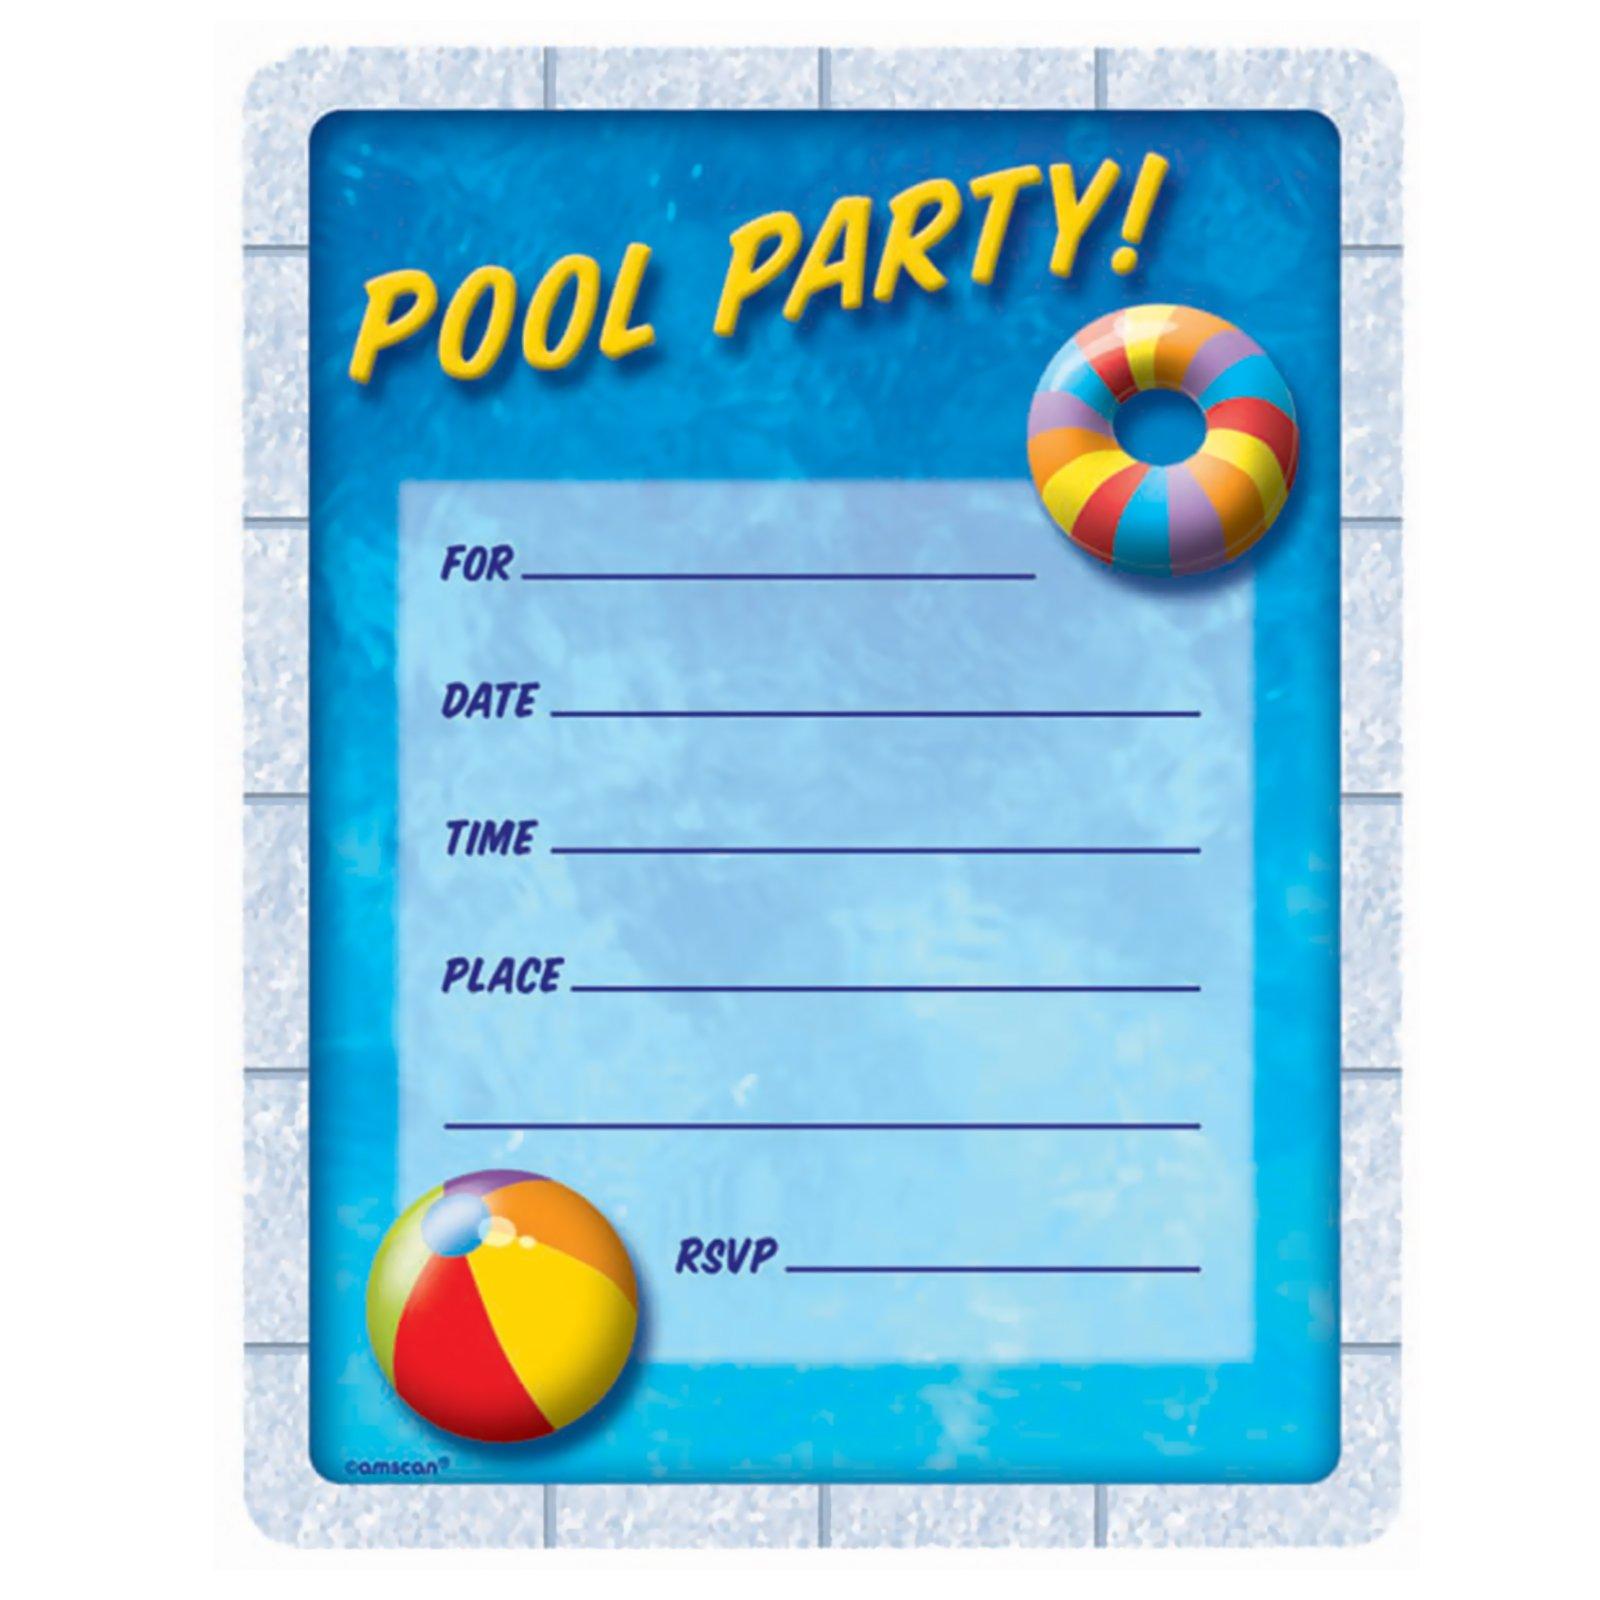 Pool Party - Invitations (50 count)